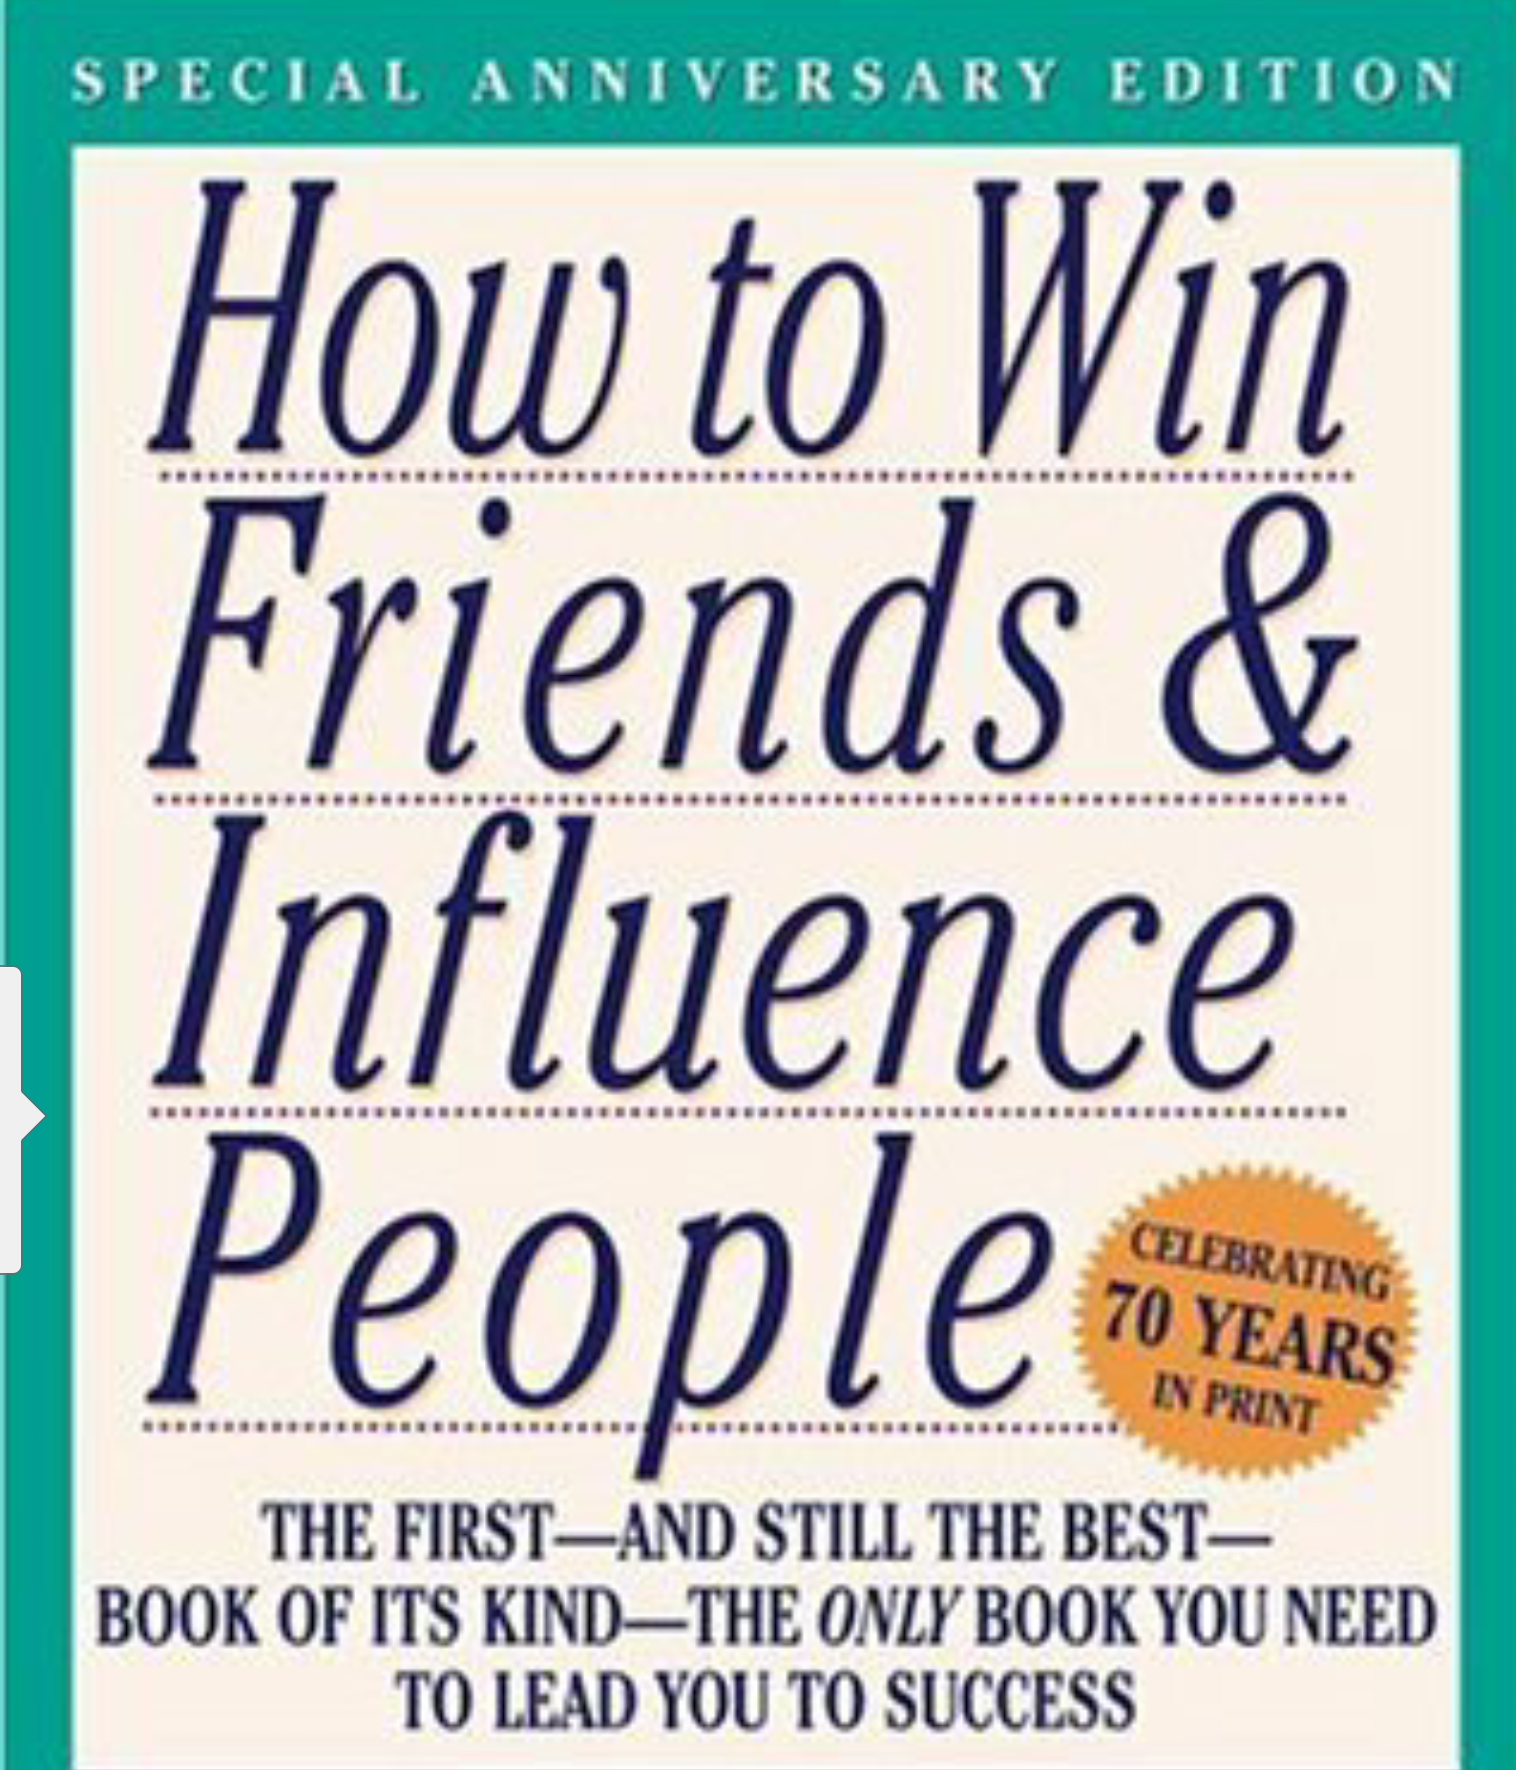 image - 12 Timeless Lessons From One Of Warren Buffett's Favorite Books